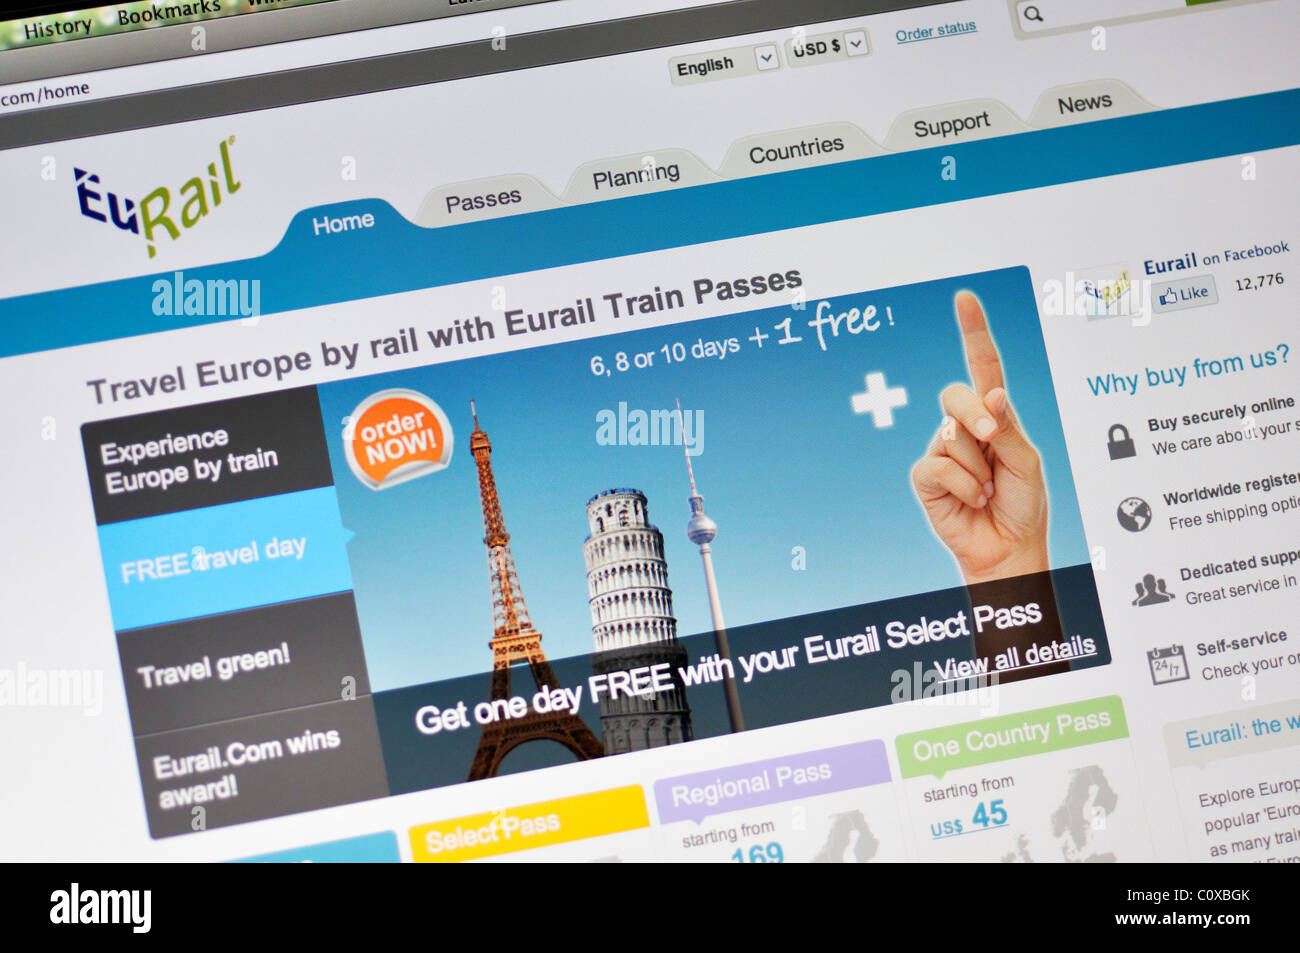 Eurail website - Passes & Seat Reservations on Europe Trains travel - Stock Image